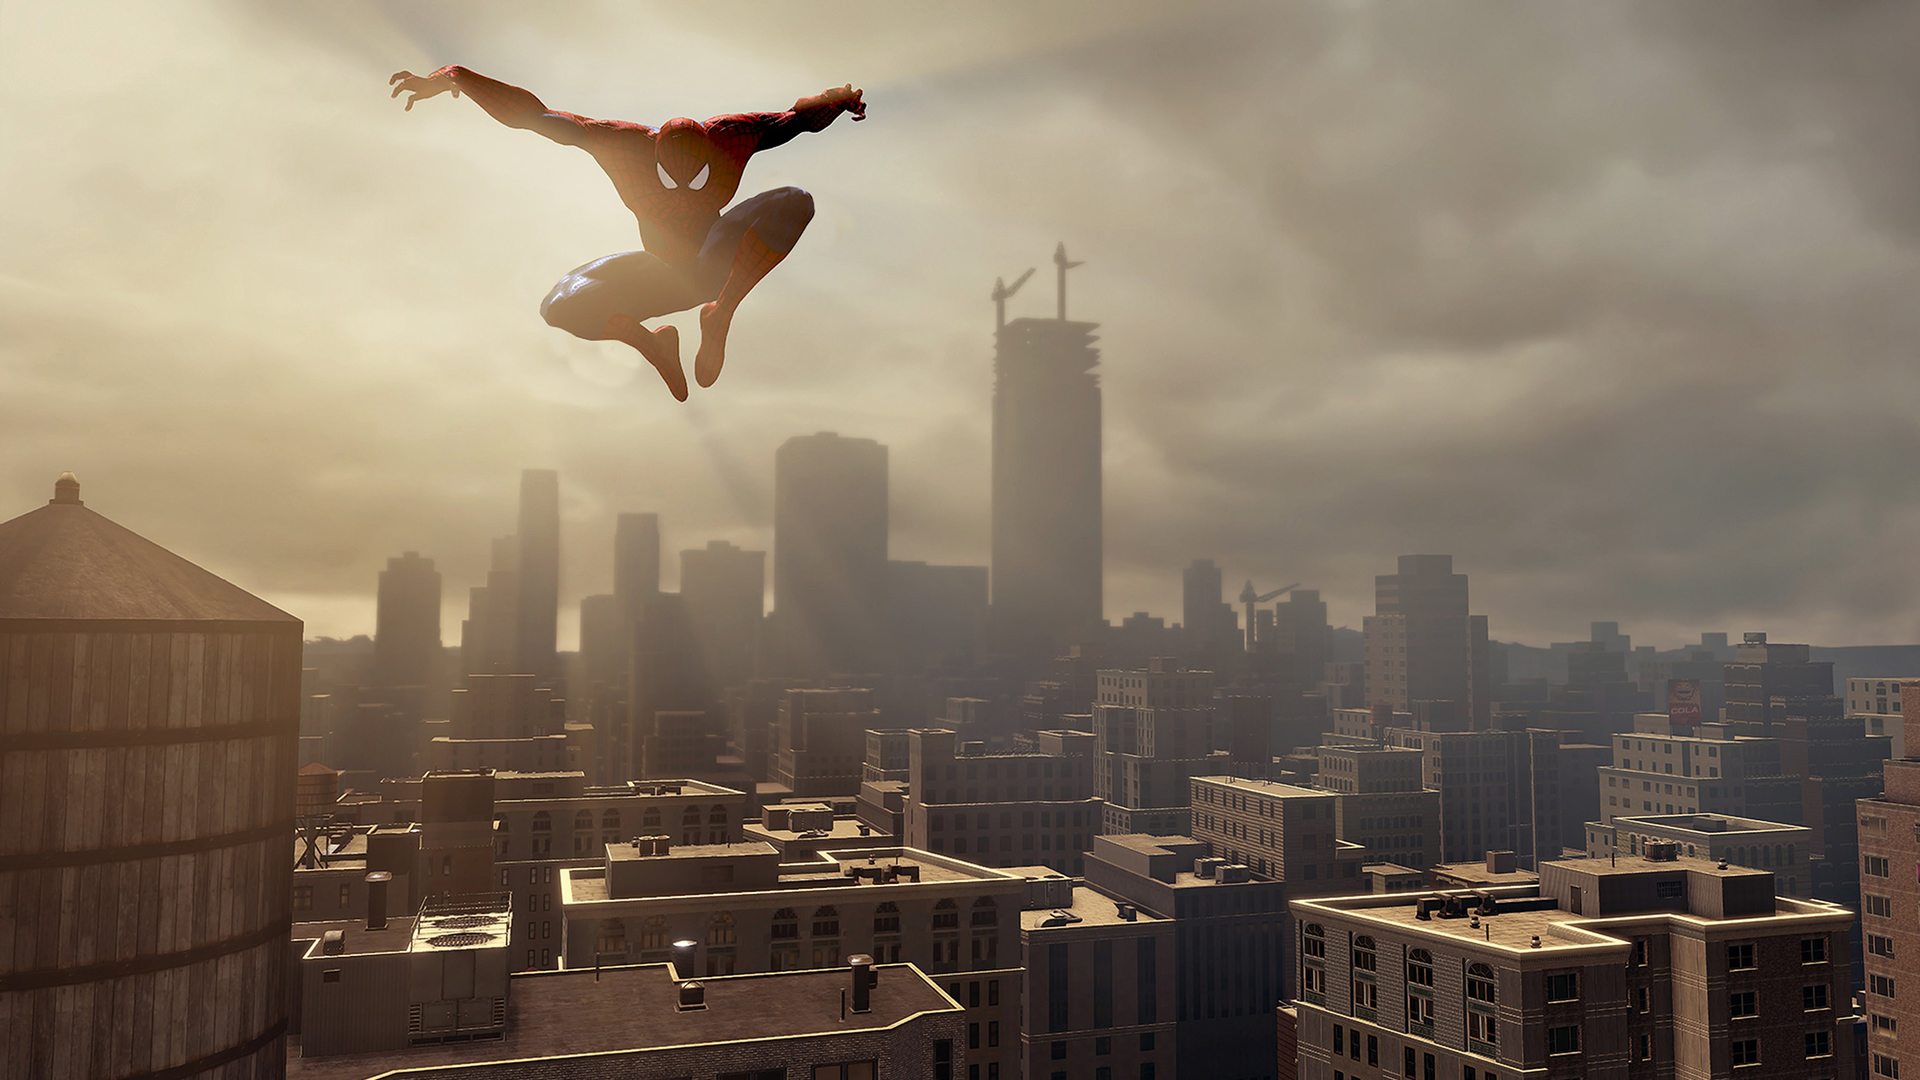 Unsurprisingly, and in spite of some bugs present, the most fun you're going to have in  ASM2  will likely be in swinging through the faithful recreation of New York City.